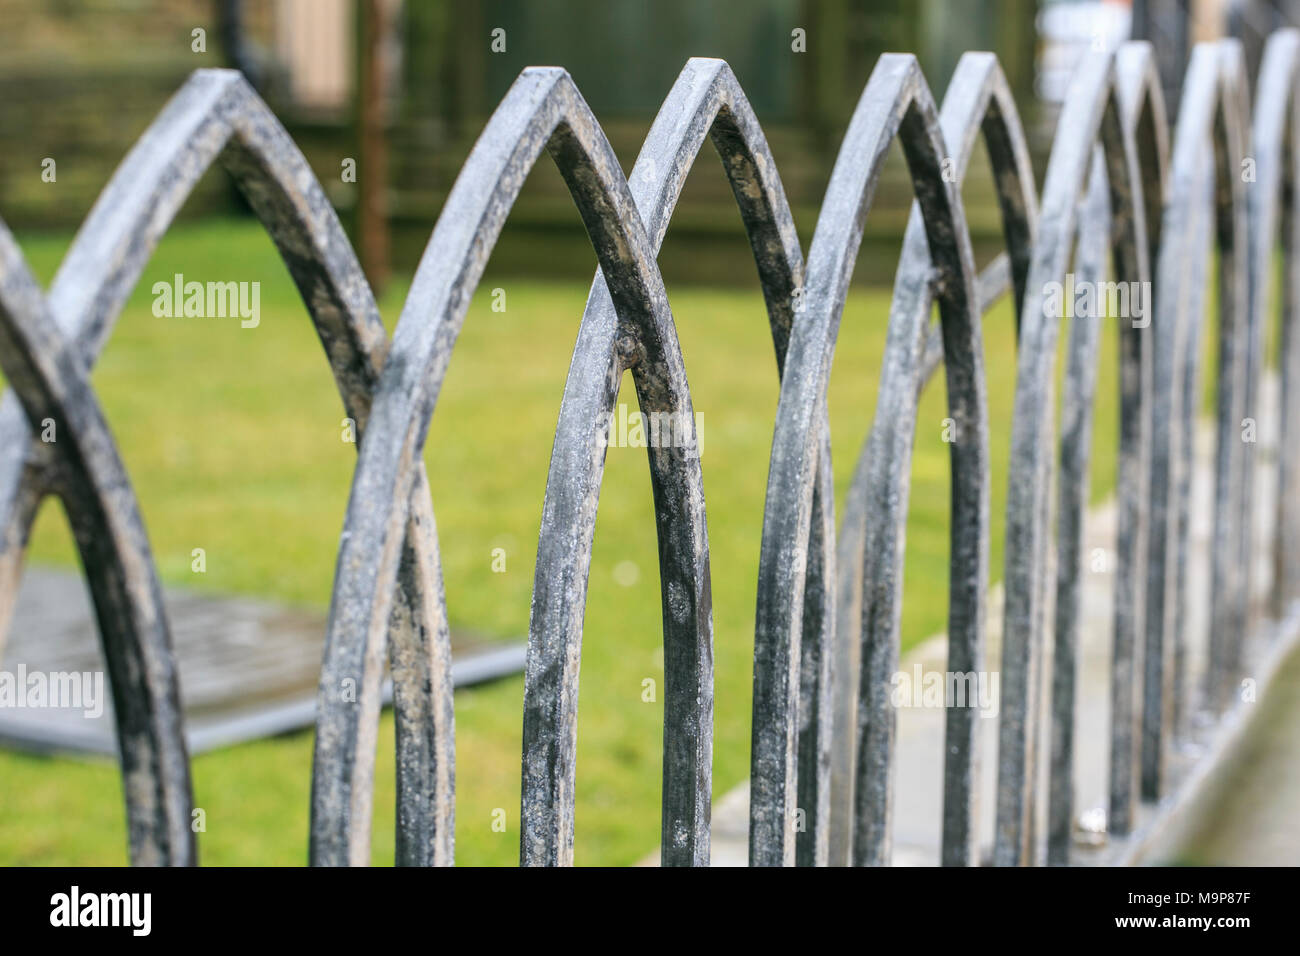 Wrought Iron Gate Spike Stock Photos & Wrought Iron Gate Spike Stock ...